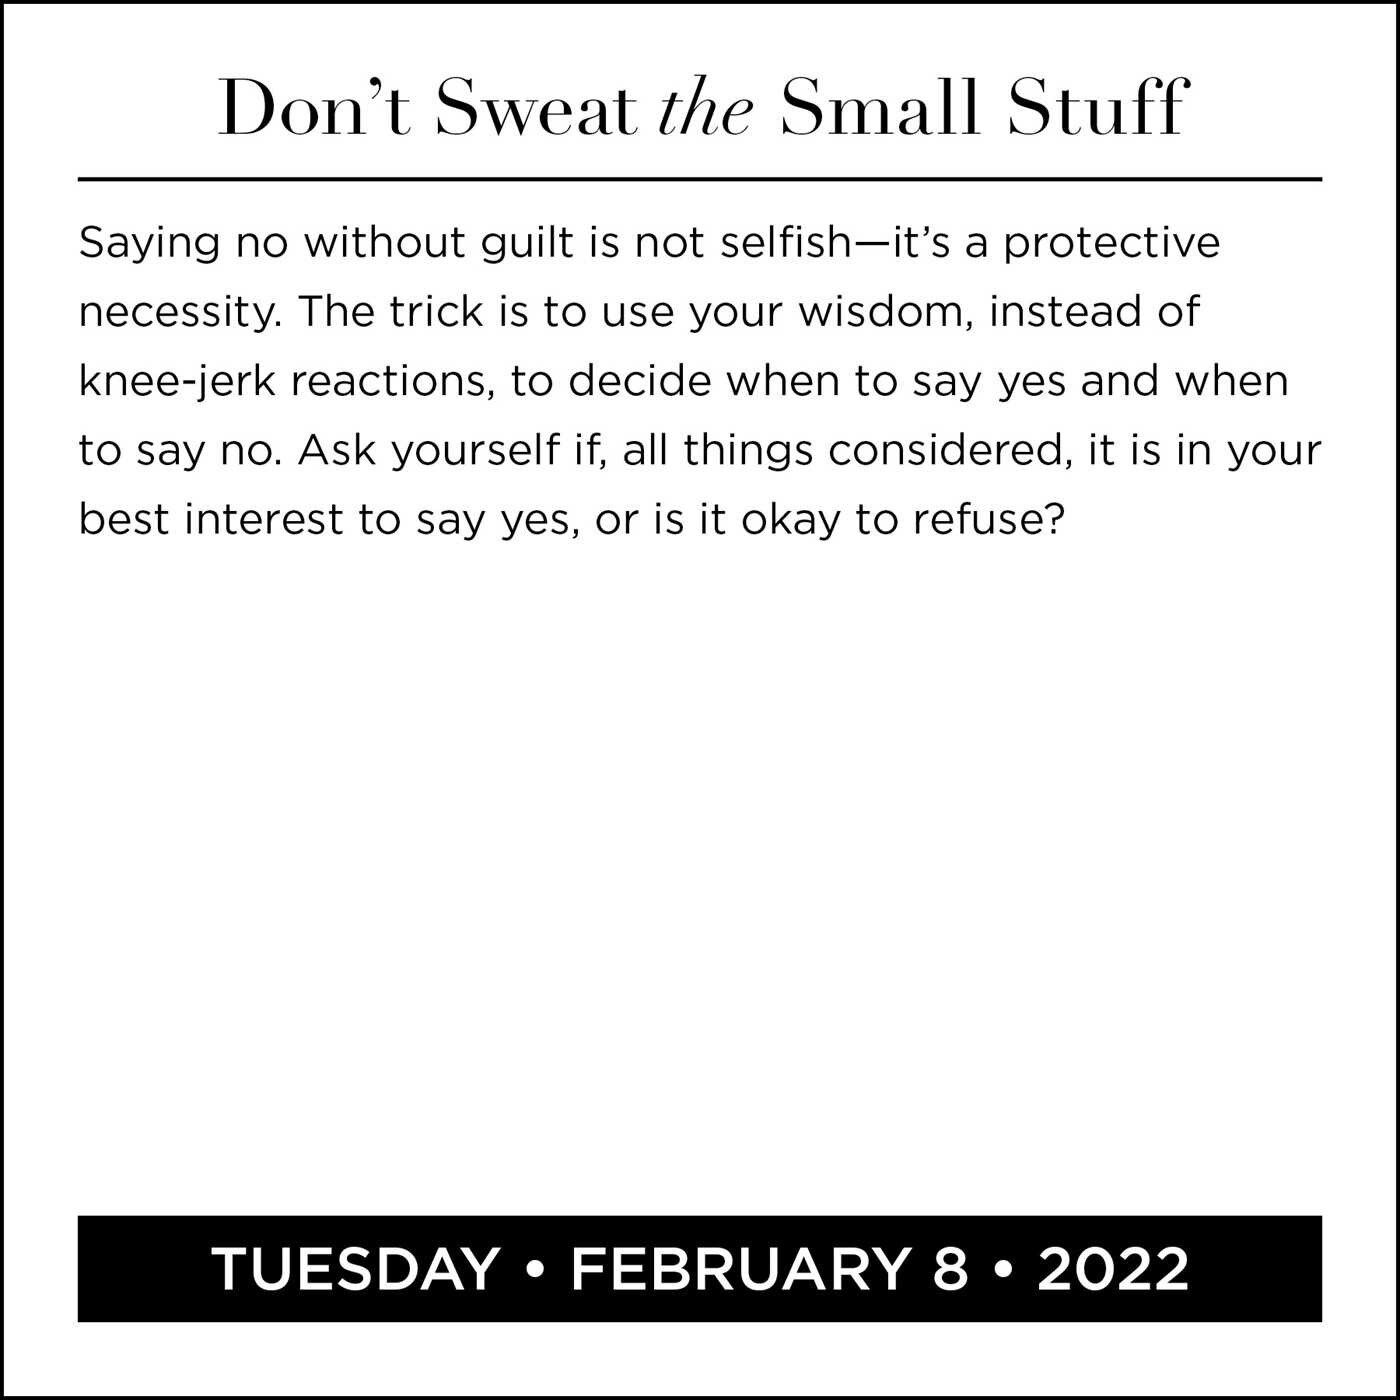 2022 Small Calendar.Don T Sweat The Small Stuff 2022 Day To Day Calendar Book Summary Video Official Publisher Page Simon Schuster